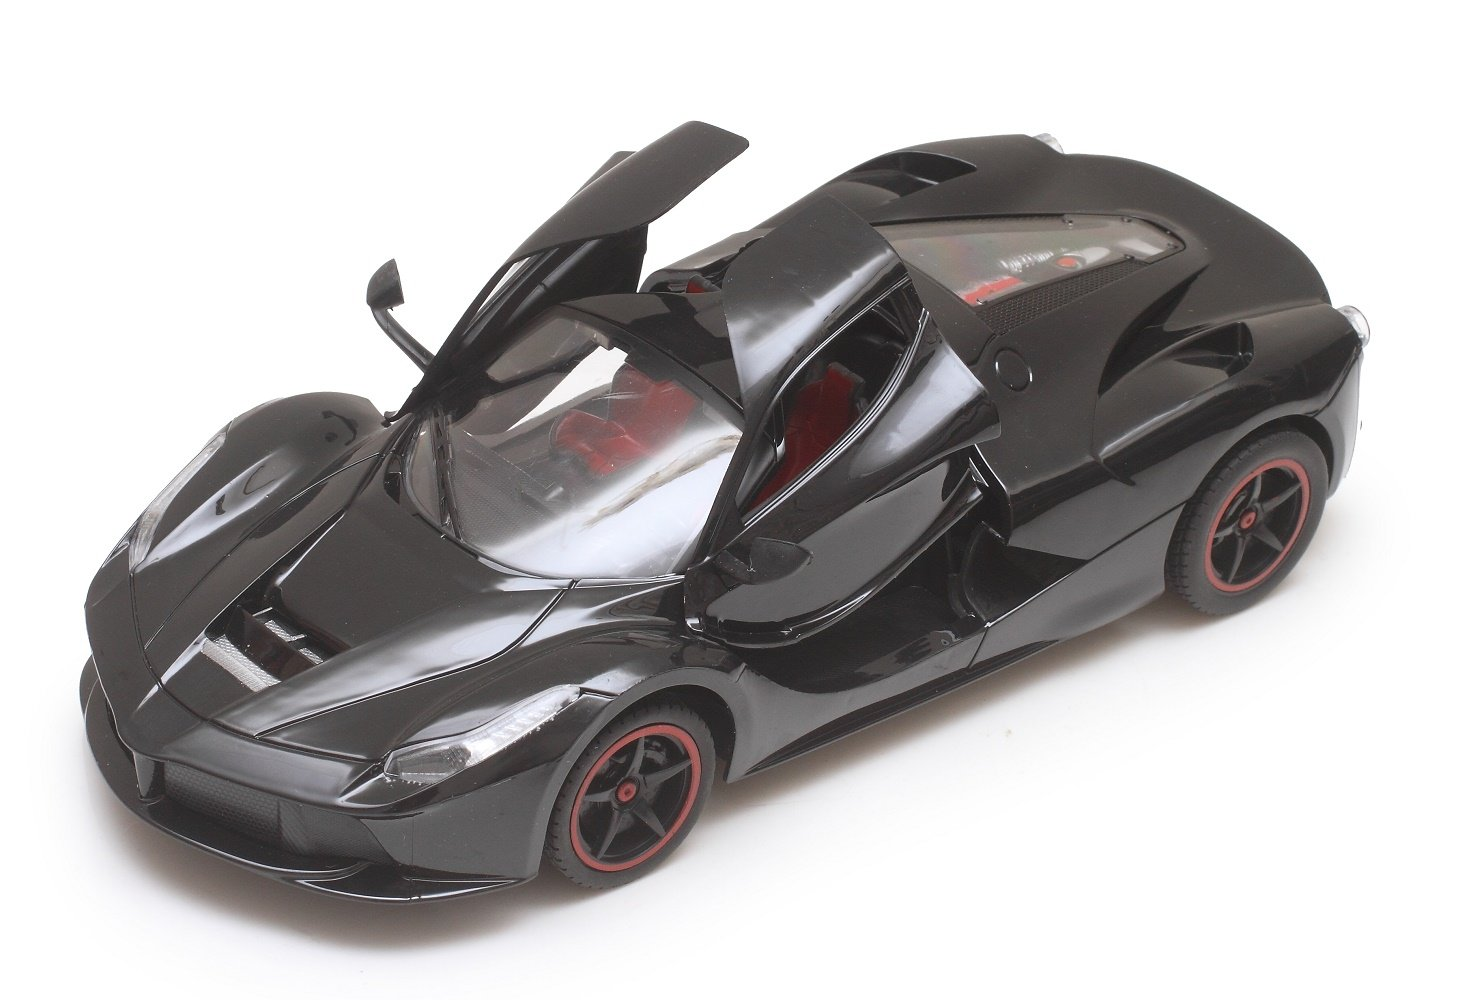 Buy The Flyers Bay Rechargeable Ferrari Style RC Car With Fully Function Doors Black Online At Low Prices In India